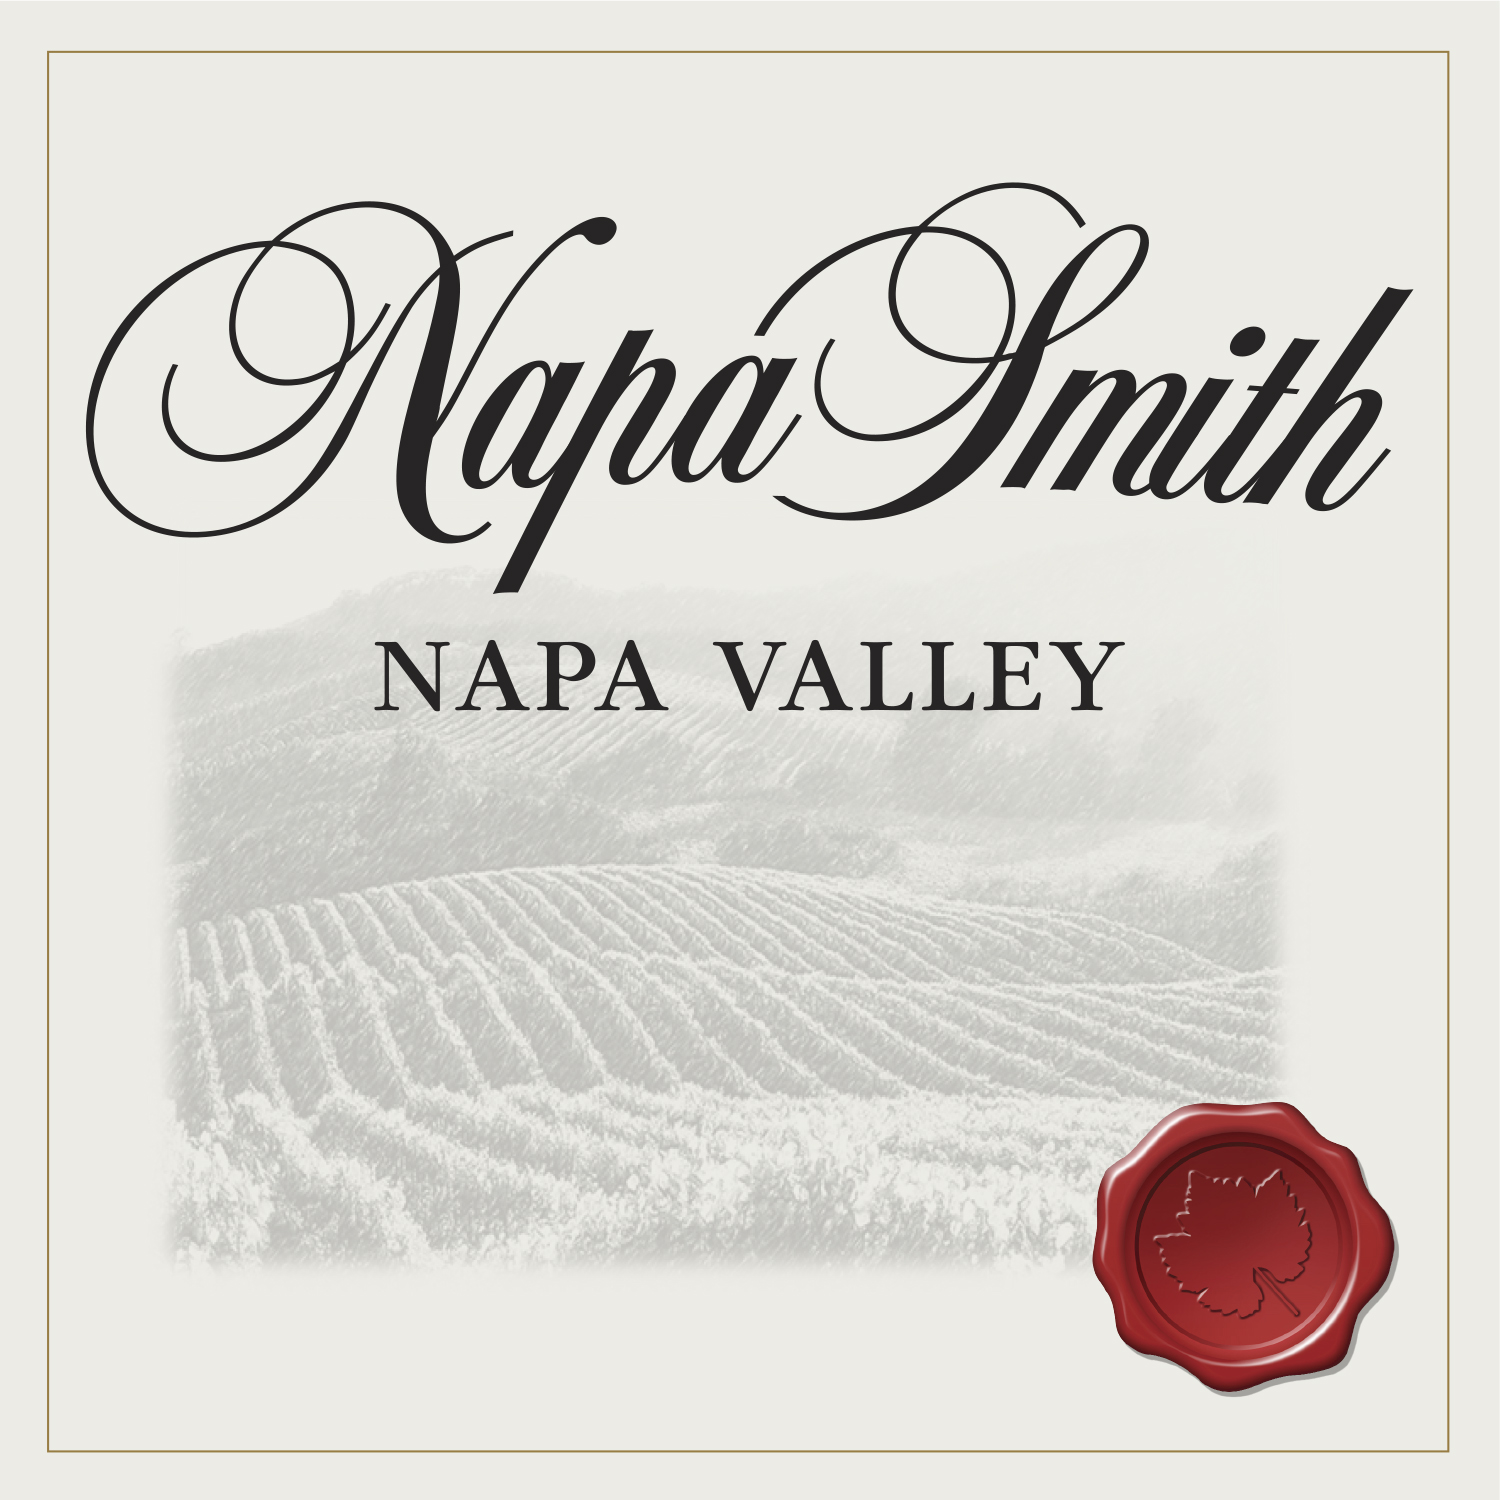 Napa Smith Winery thumbnail